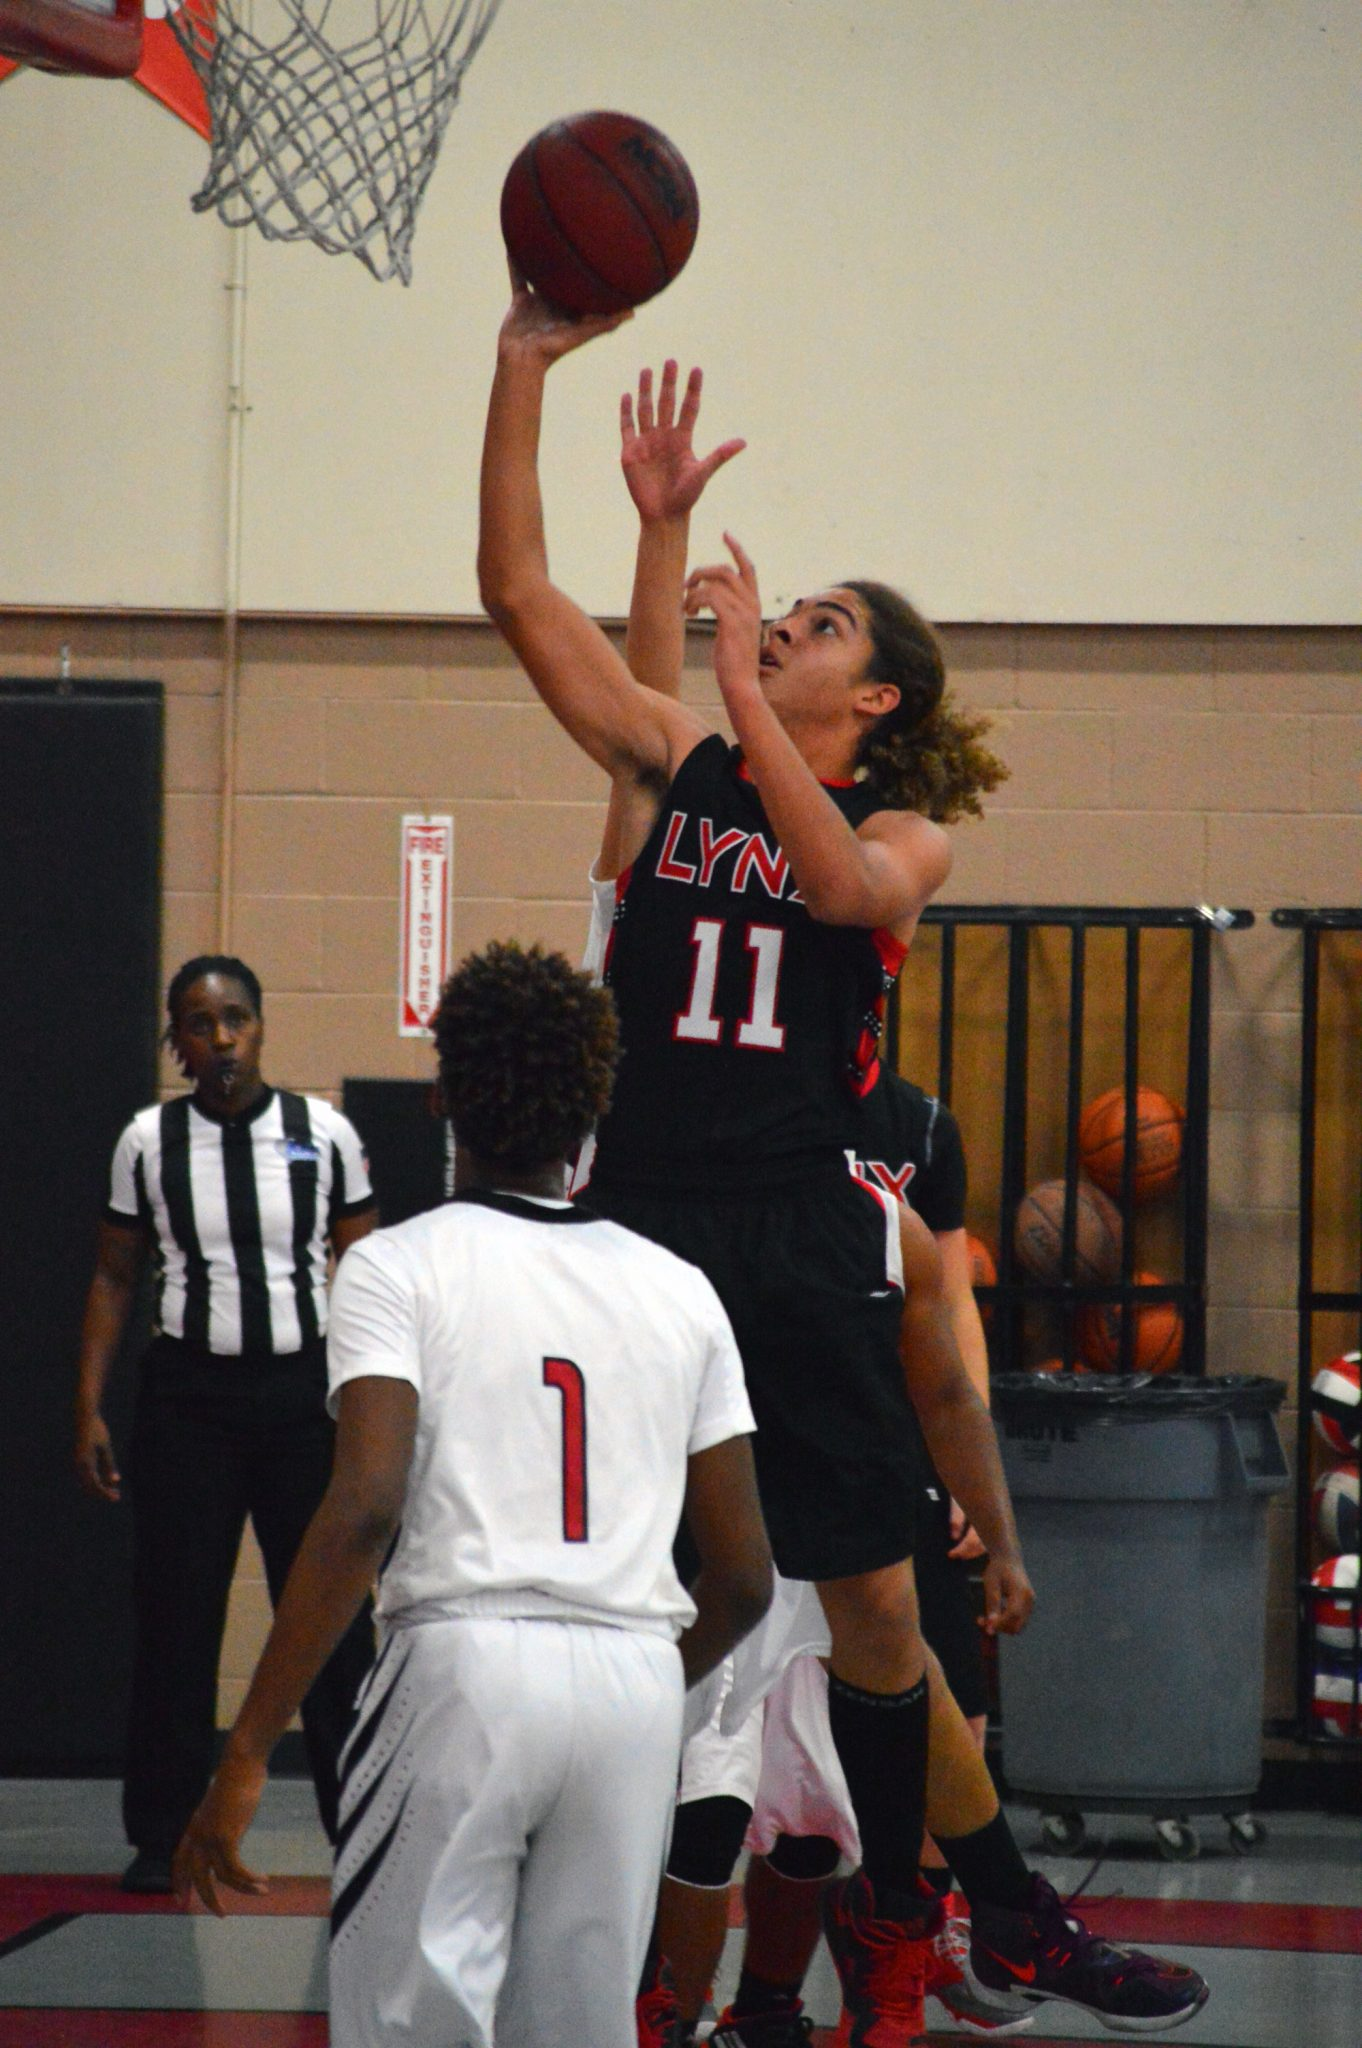 Lincoln Boys Knock off Mountain View, Lake Mead